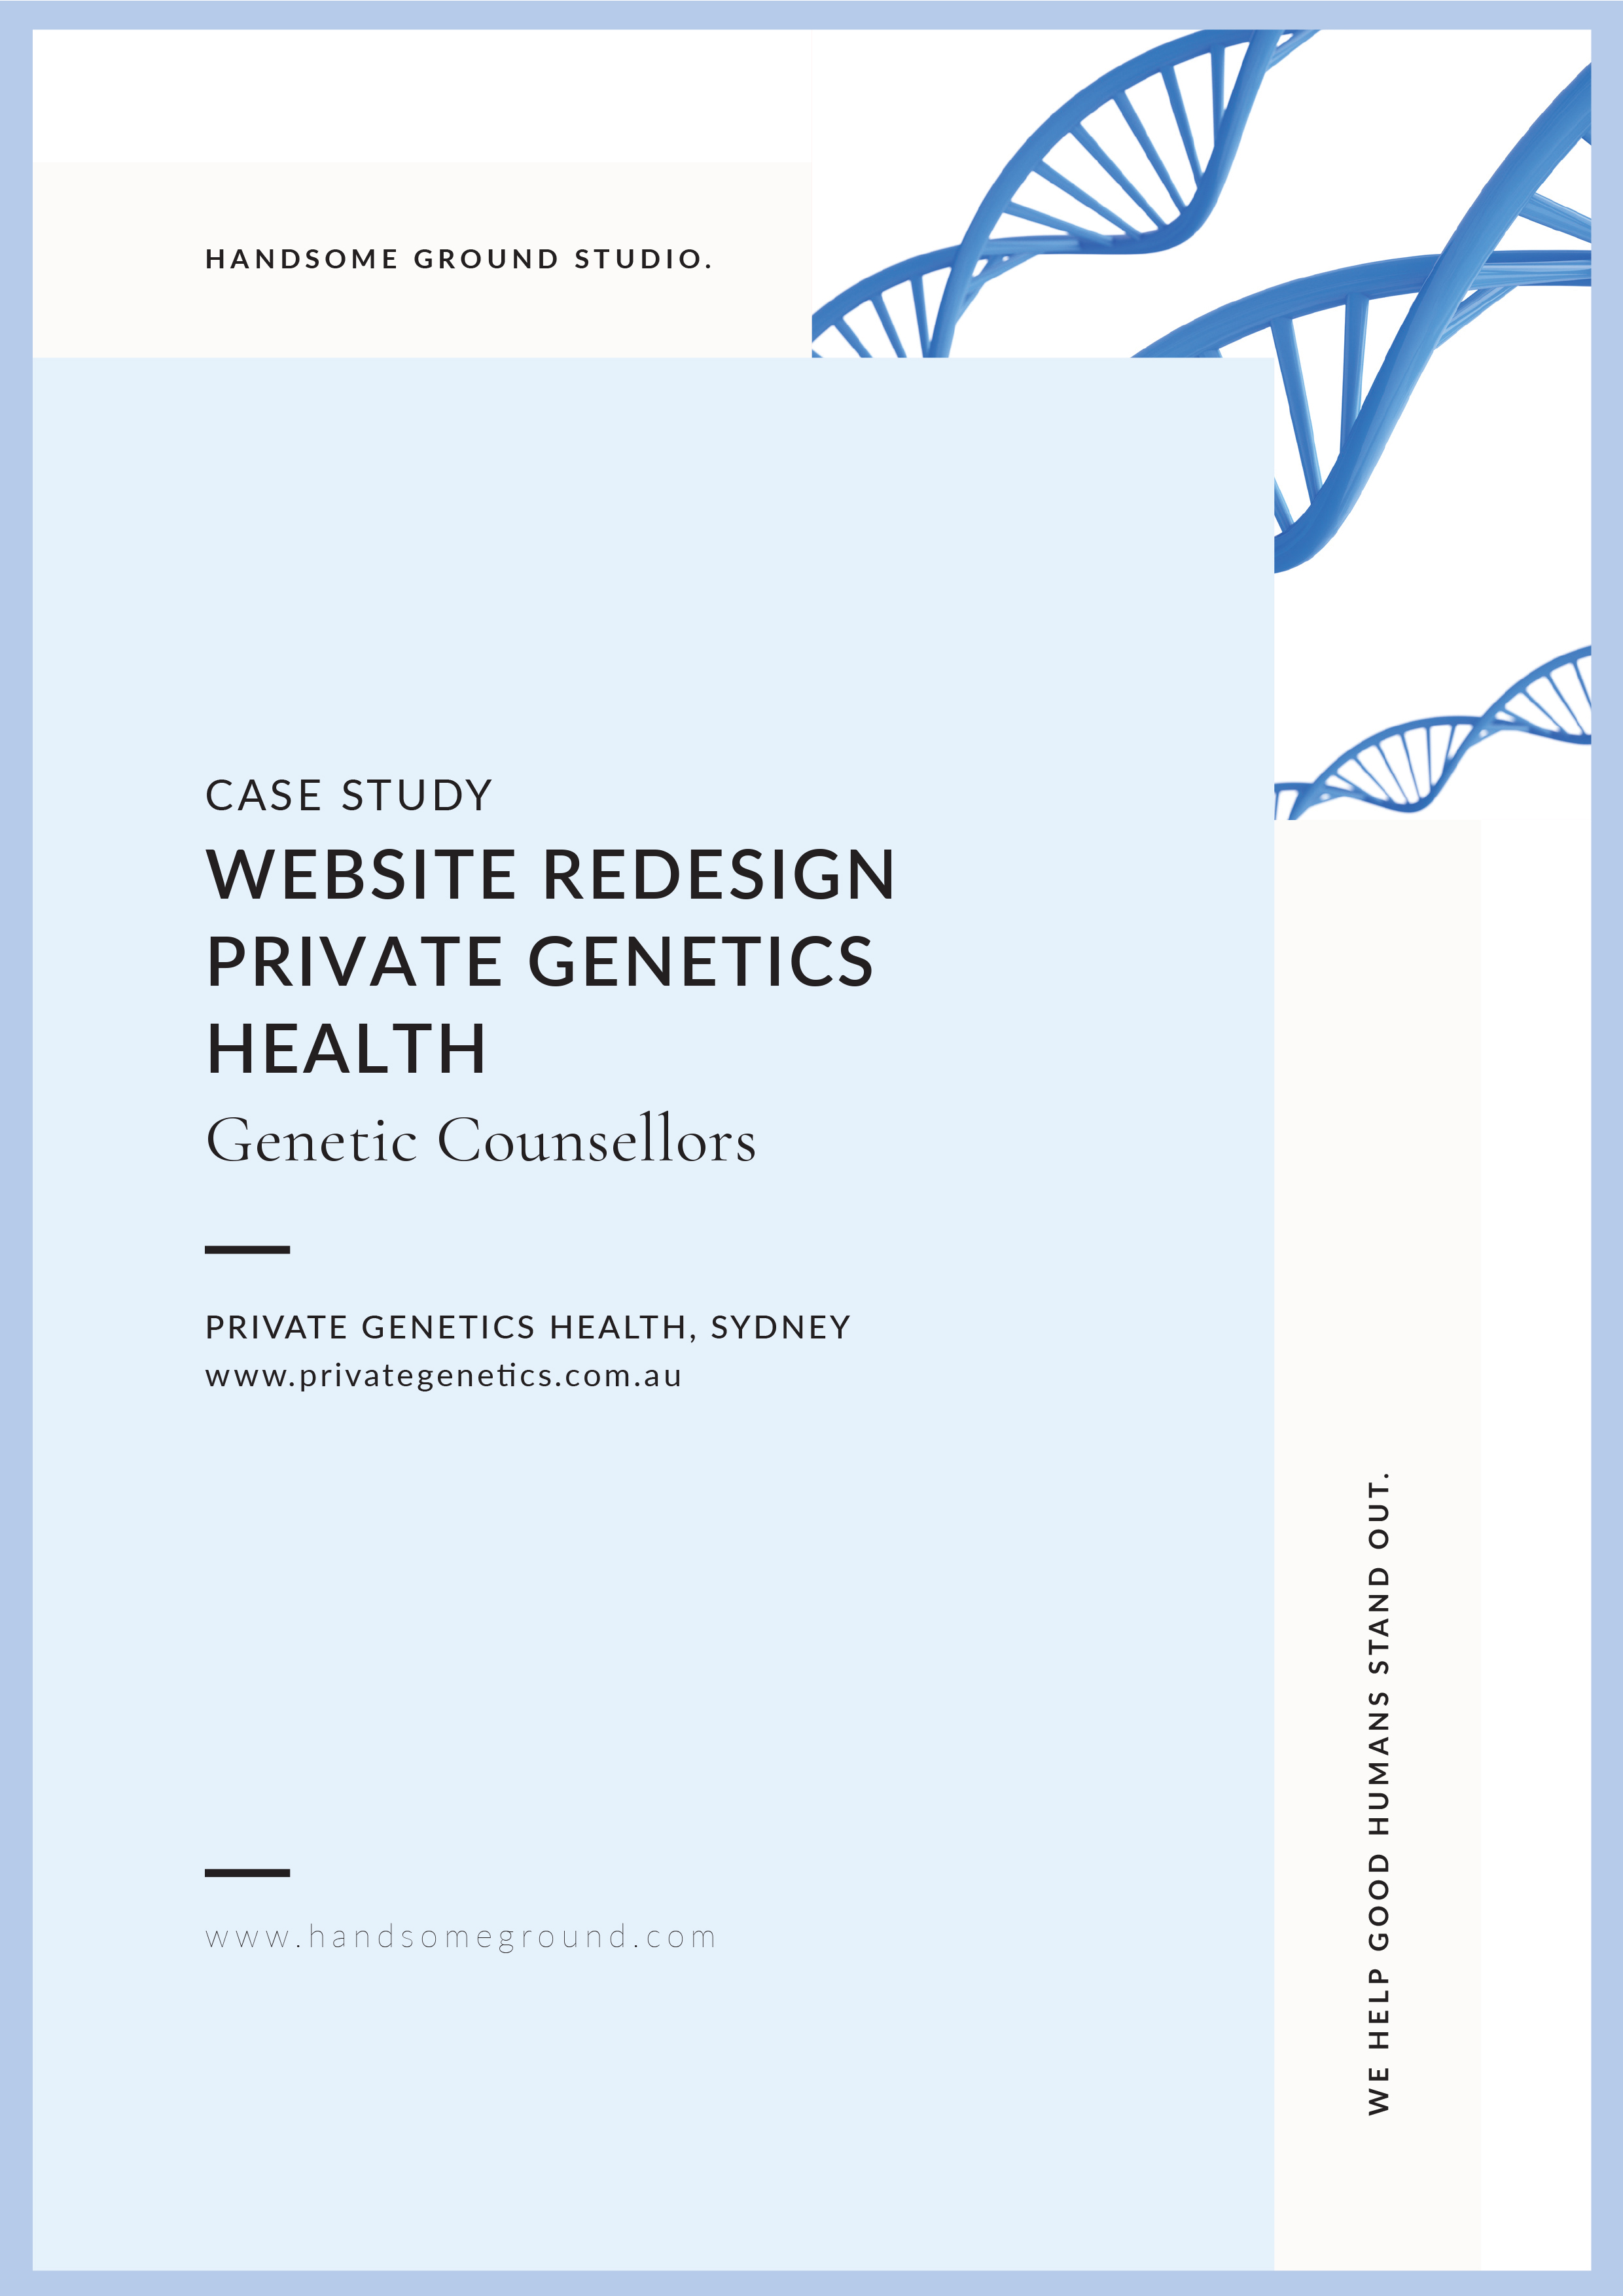 Website redesign for Private Genetics Health, Genetic Counselling Services based in Sydney